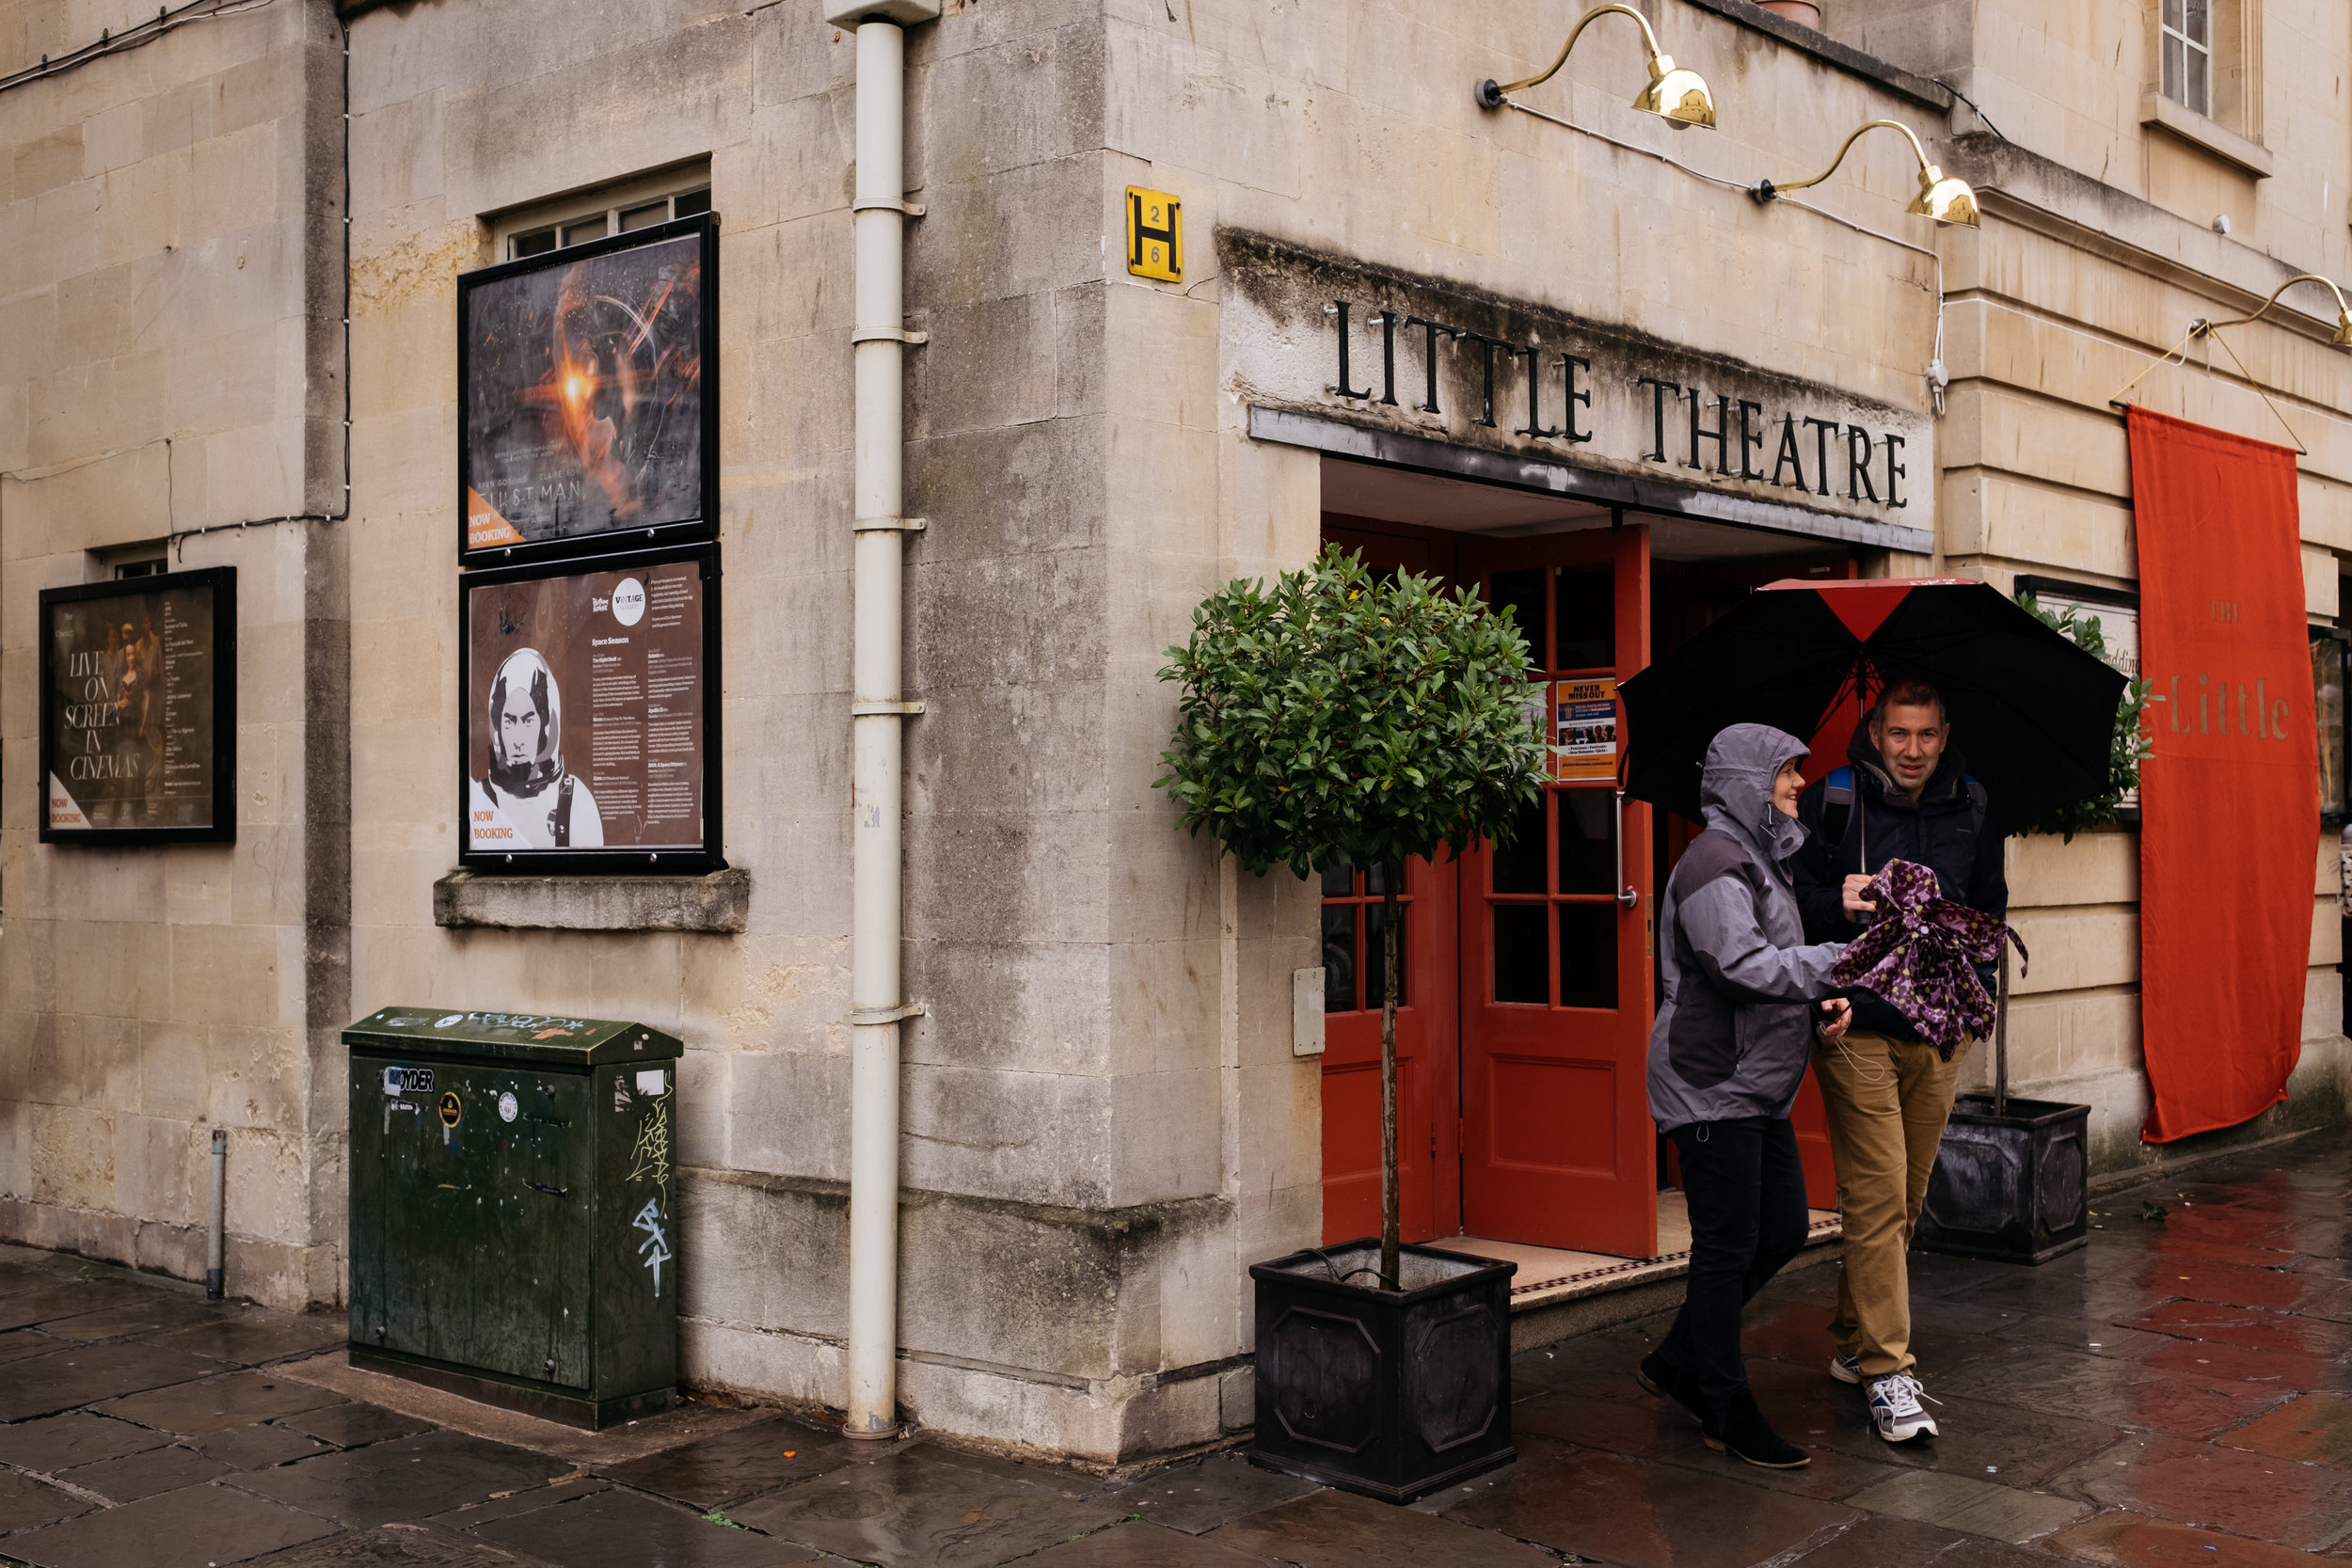 Little Theatre in Bath